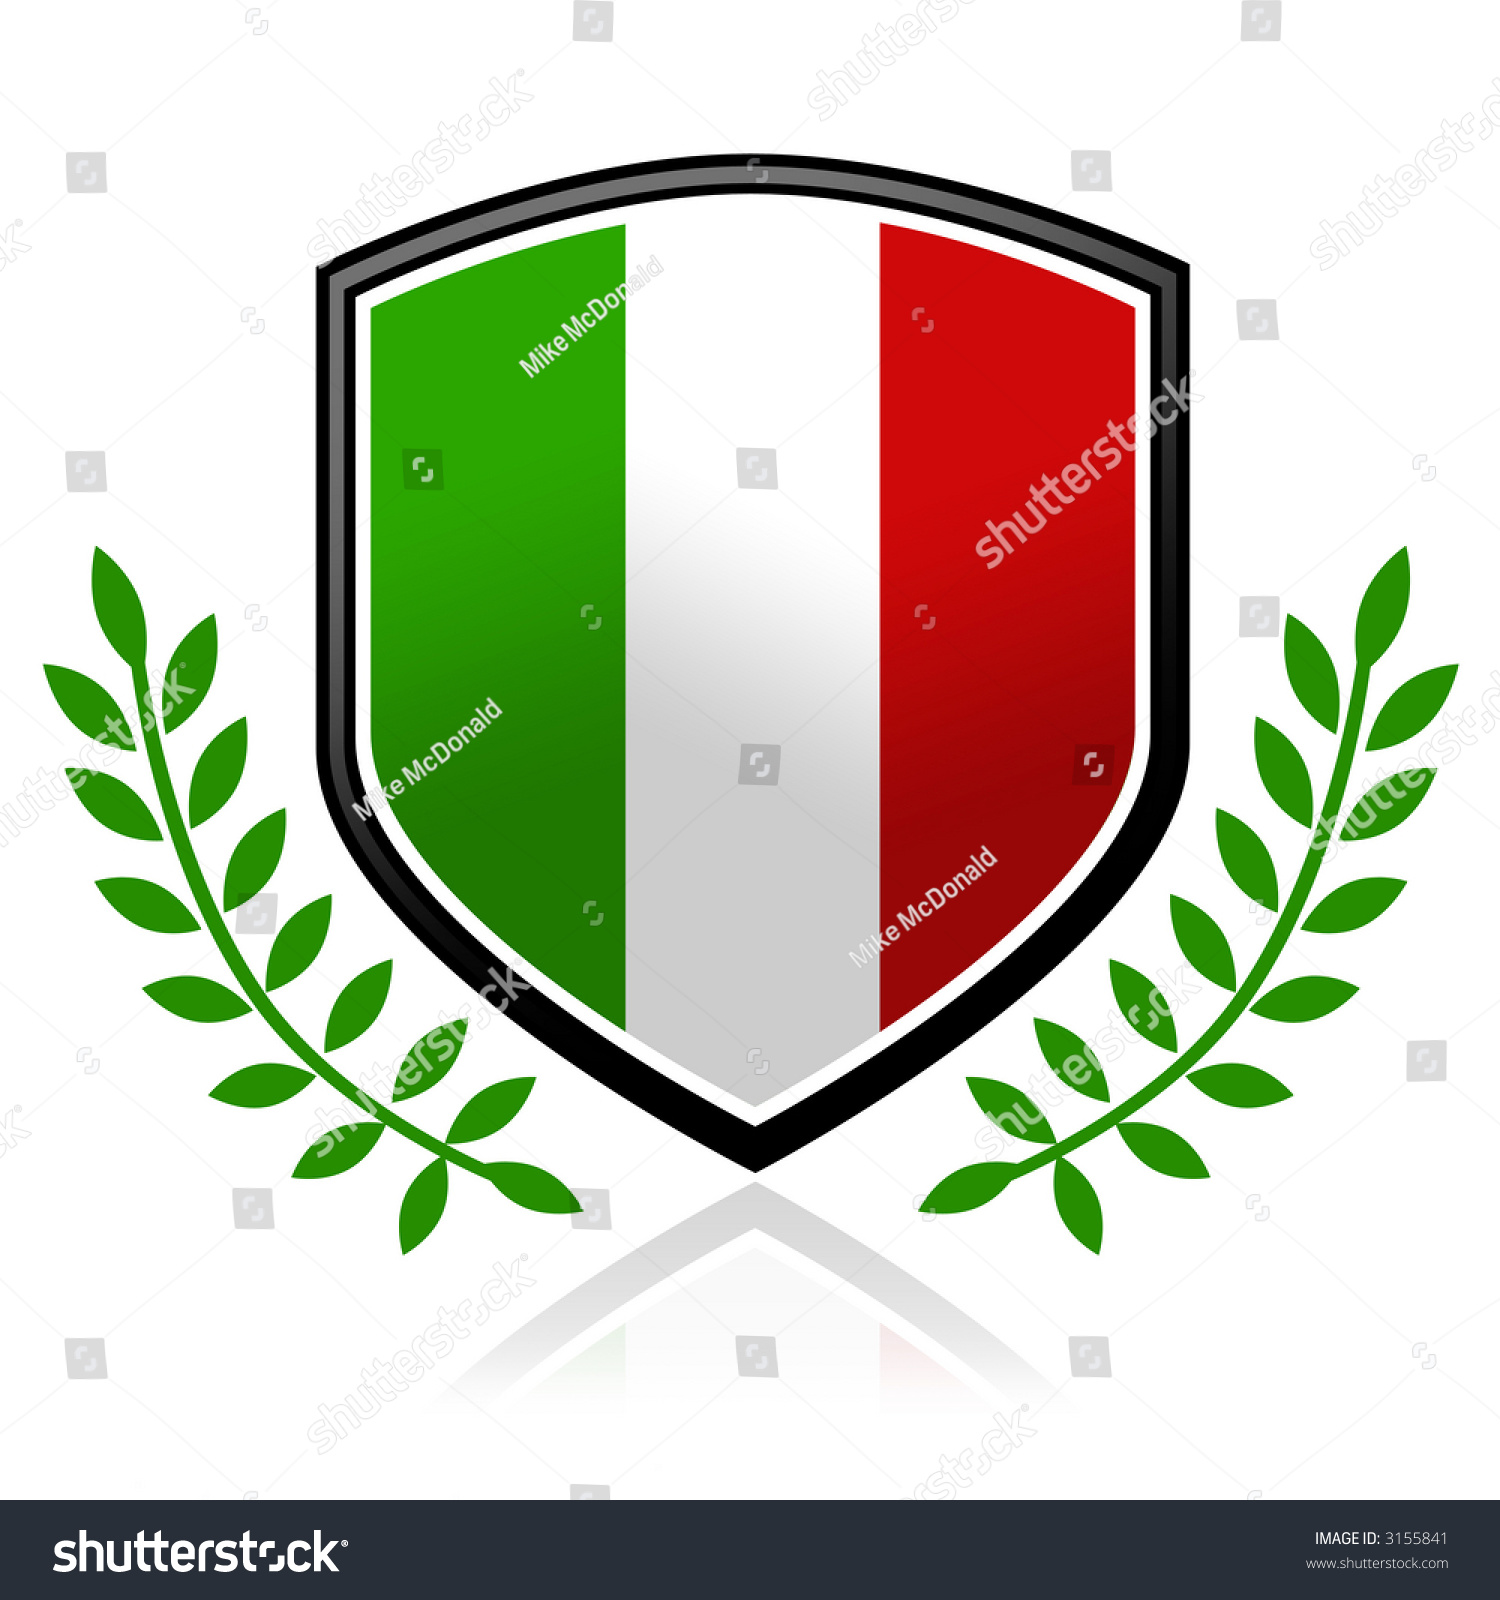 stock-photo-italian-flag-shield-3155841-1